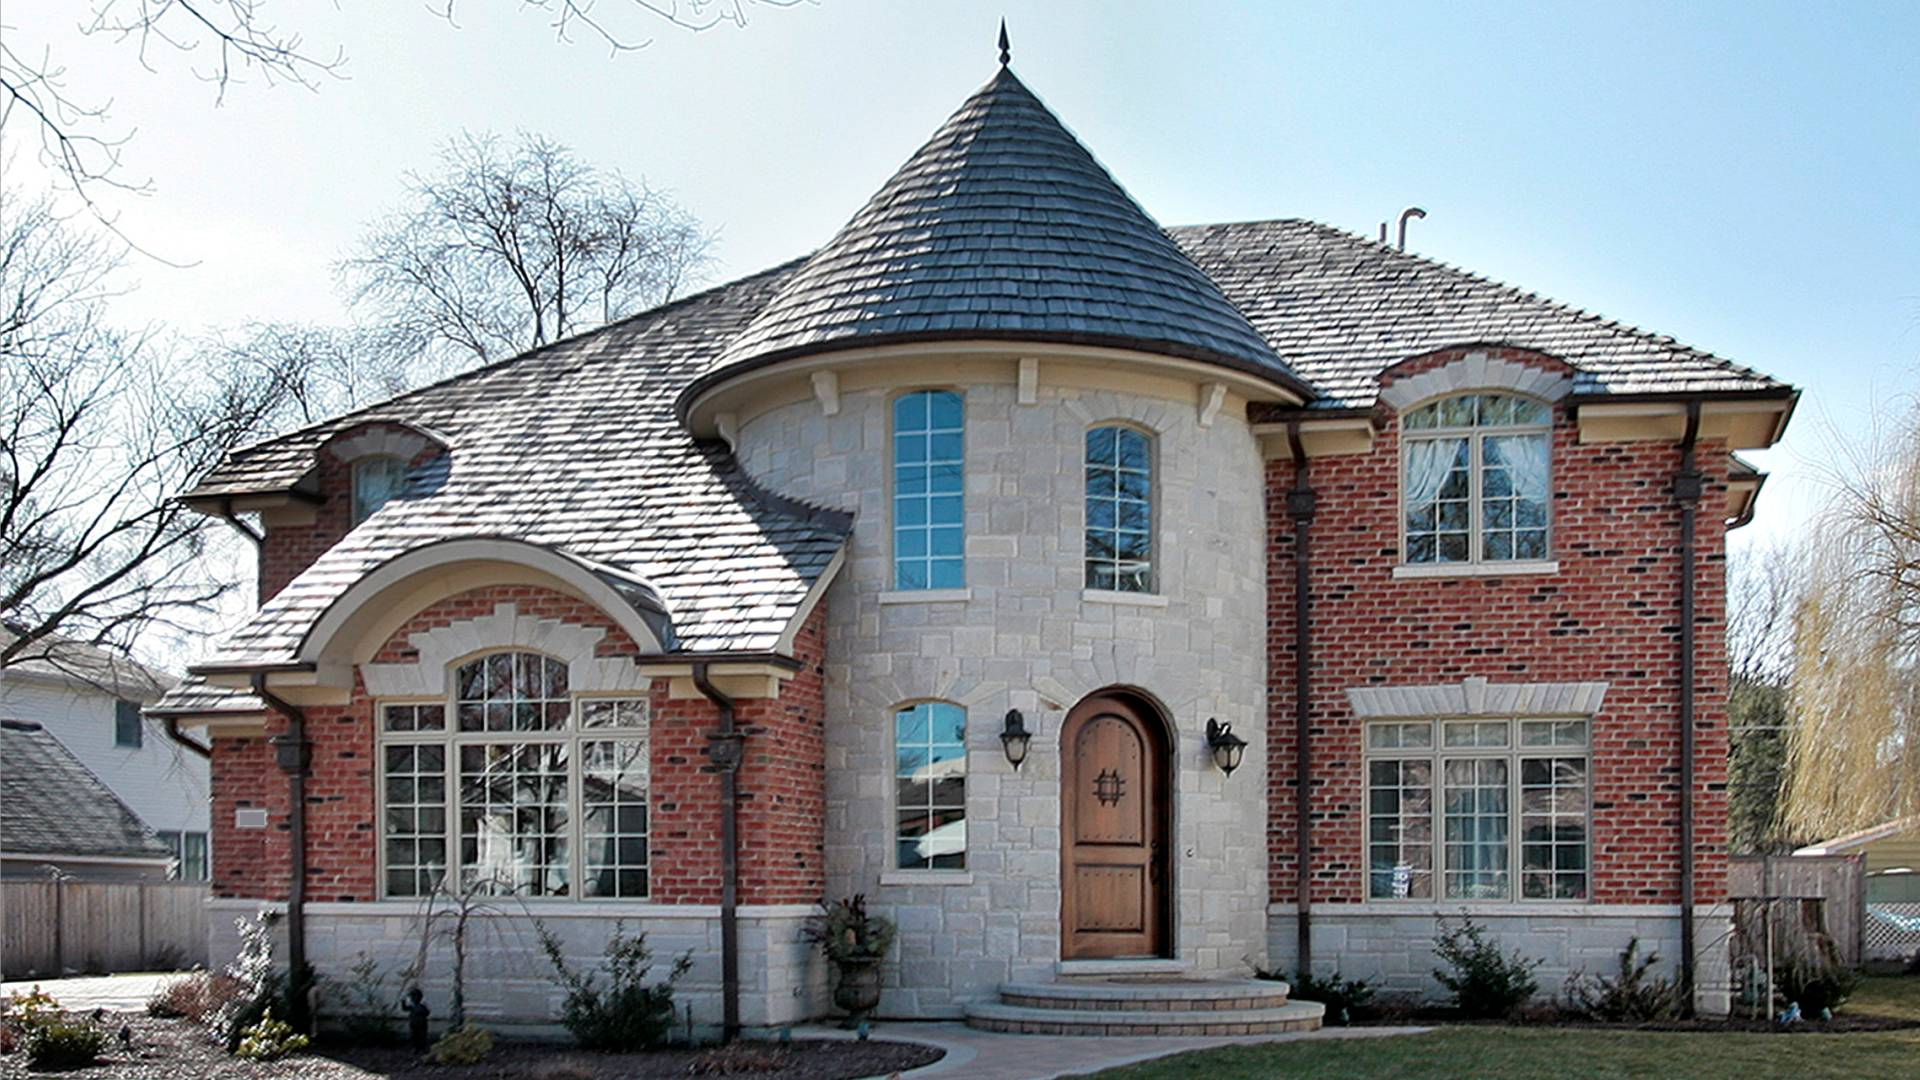 Dewes House in Glenview by Greenleaf Developers - front view